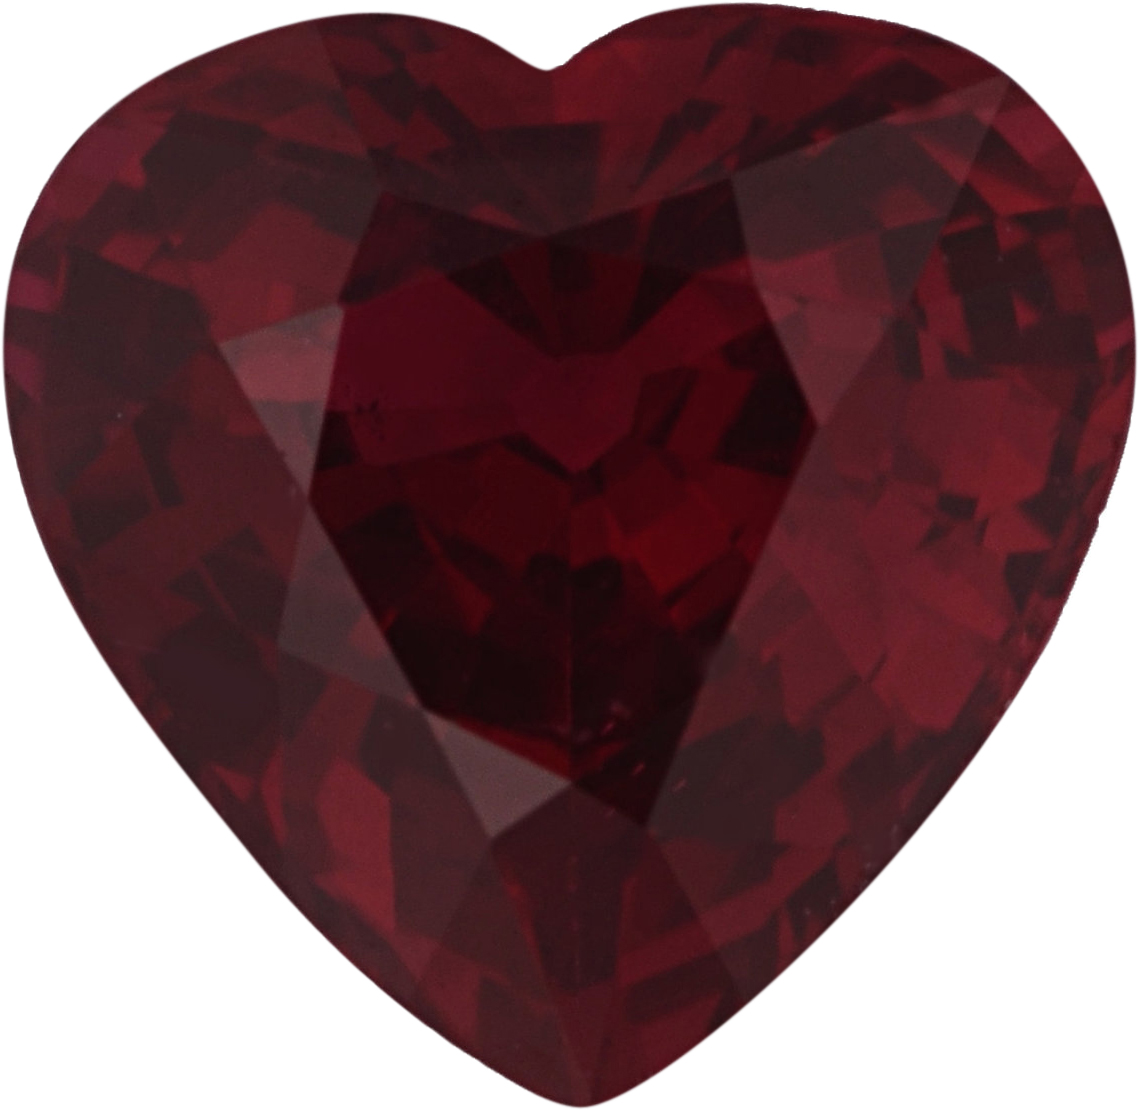 Fine  Unheated Ruby Loose Gem in Heart Cut, Vibrant Purple Red, 6.49 x 6.56  mm, 1.18 Carats